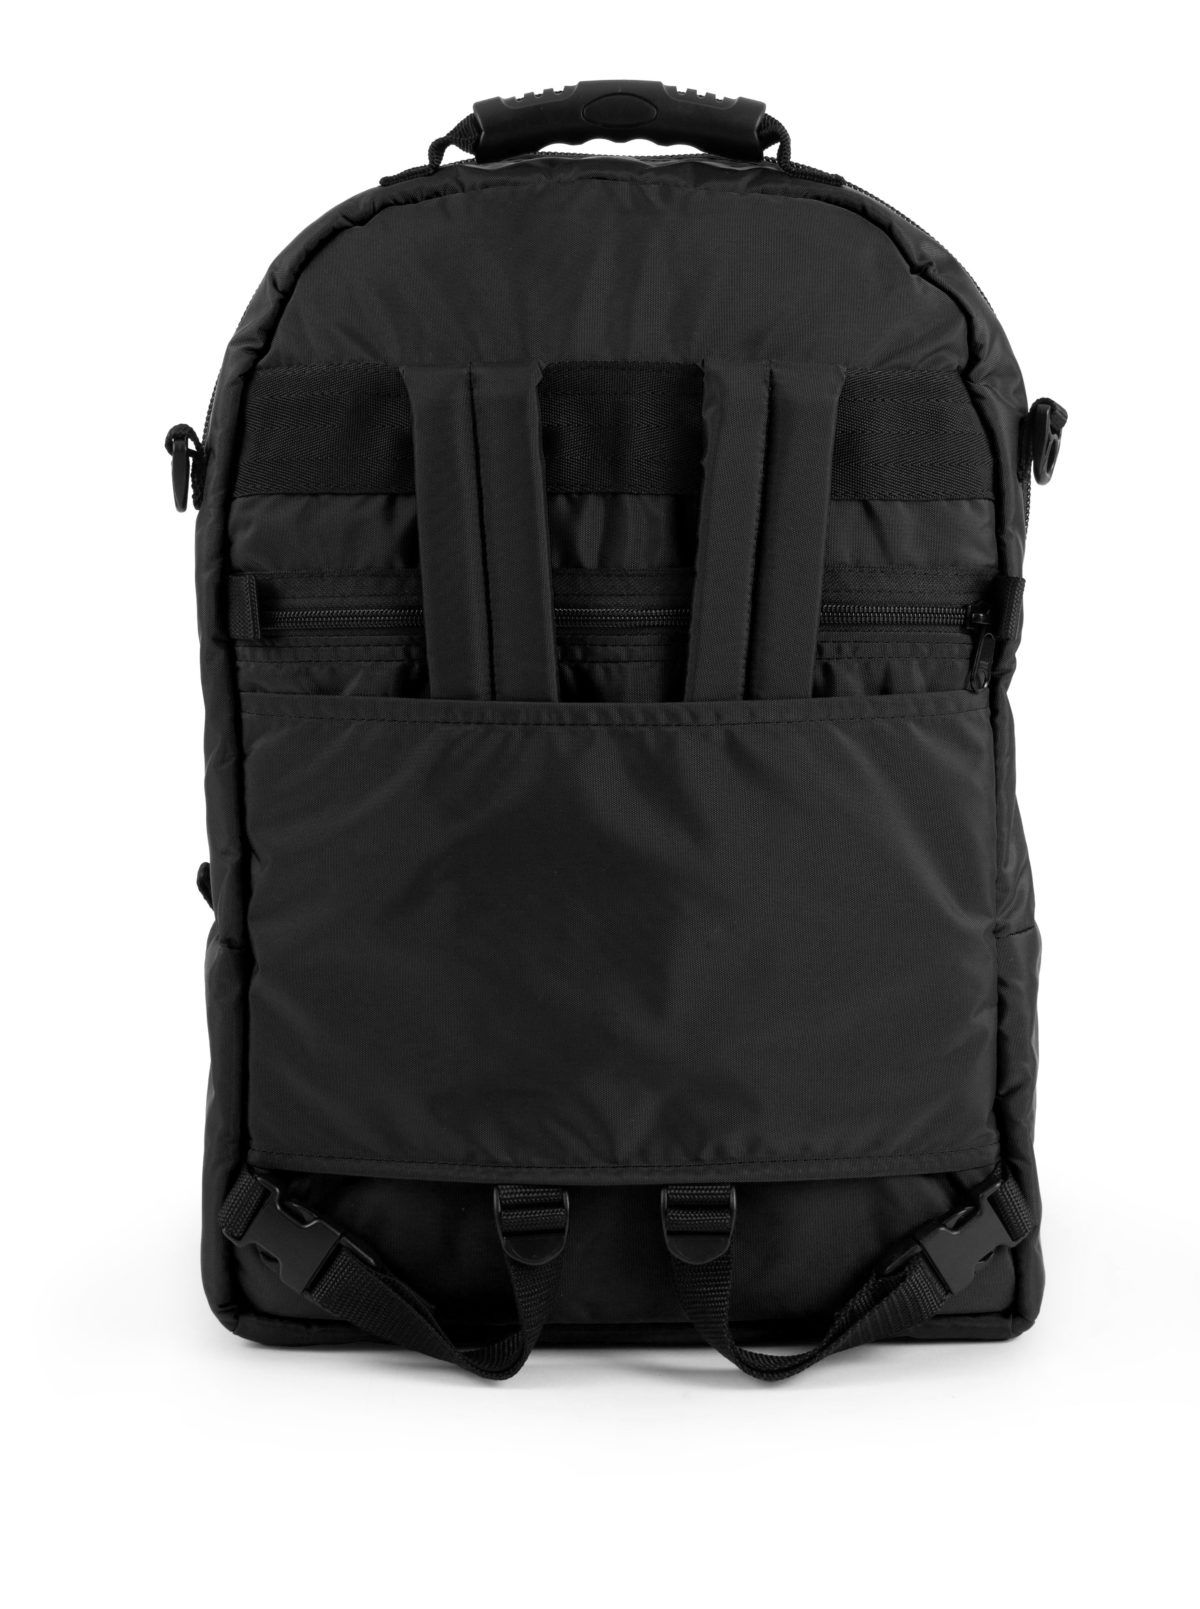 Altieri Clarinet and Laptop Backpack Back View CLBP 00